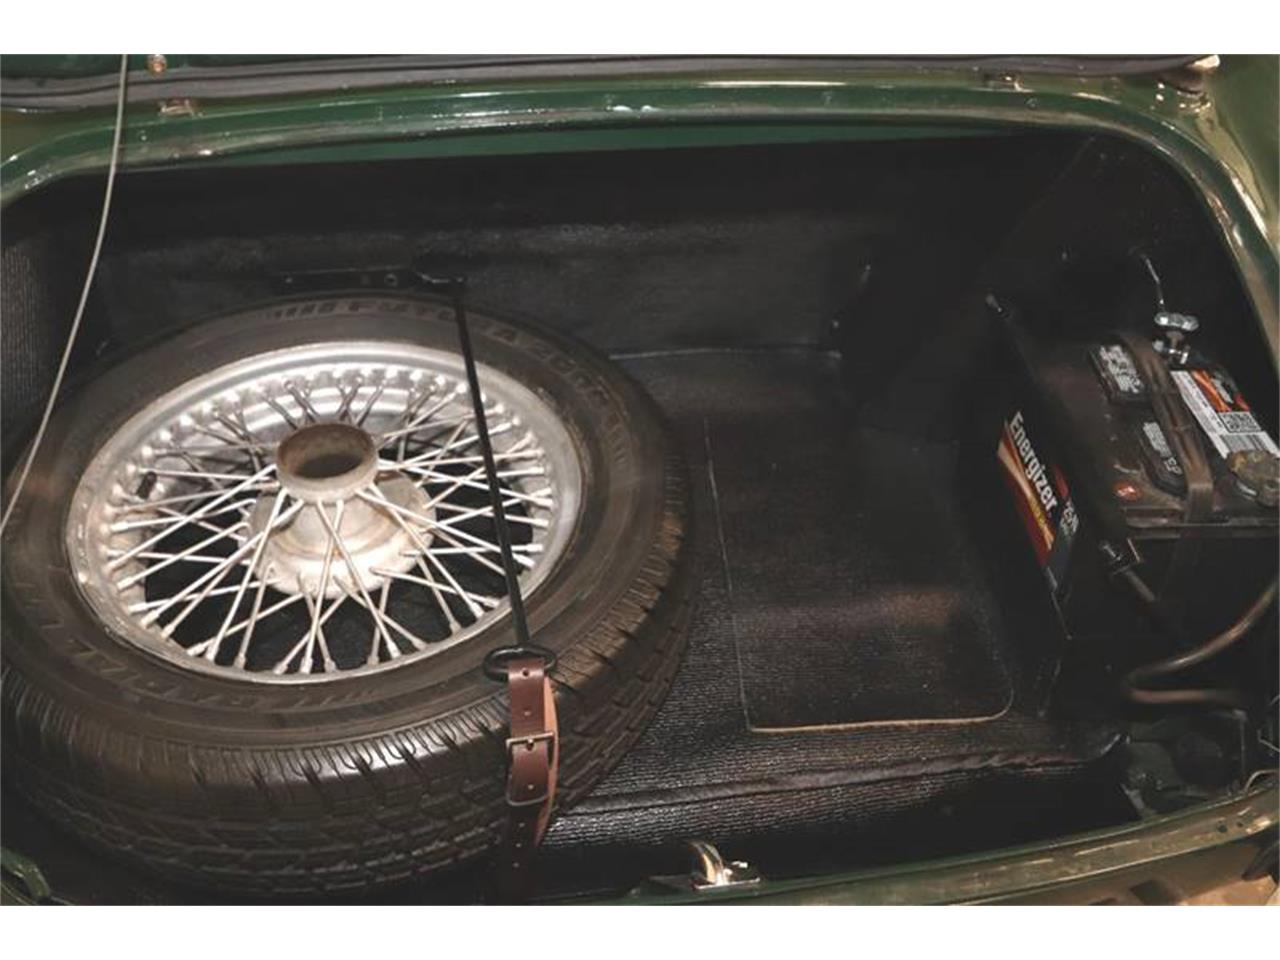 1967 Austin-Healey 3000 Mark III BJ8 for sale in St Louis, MO – photo 29